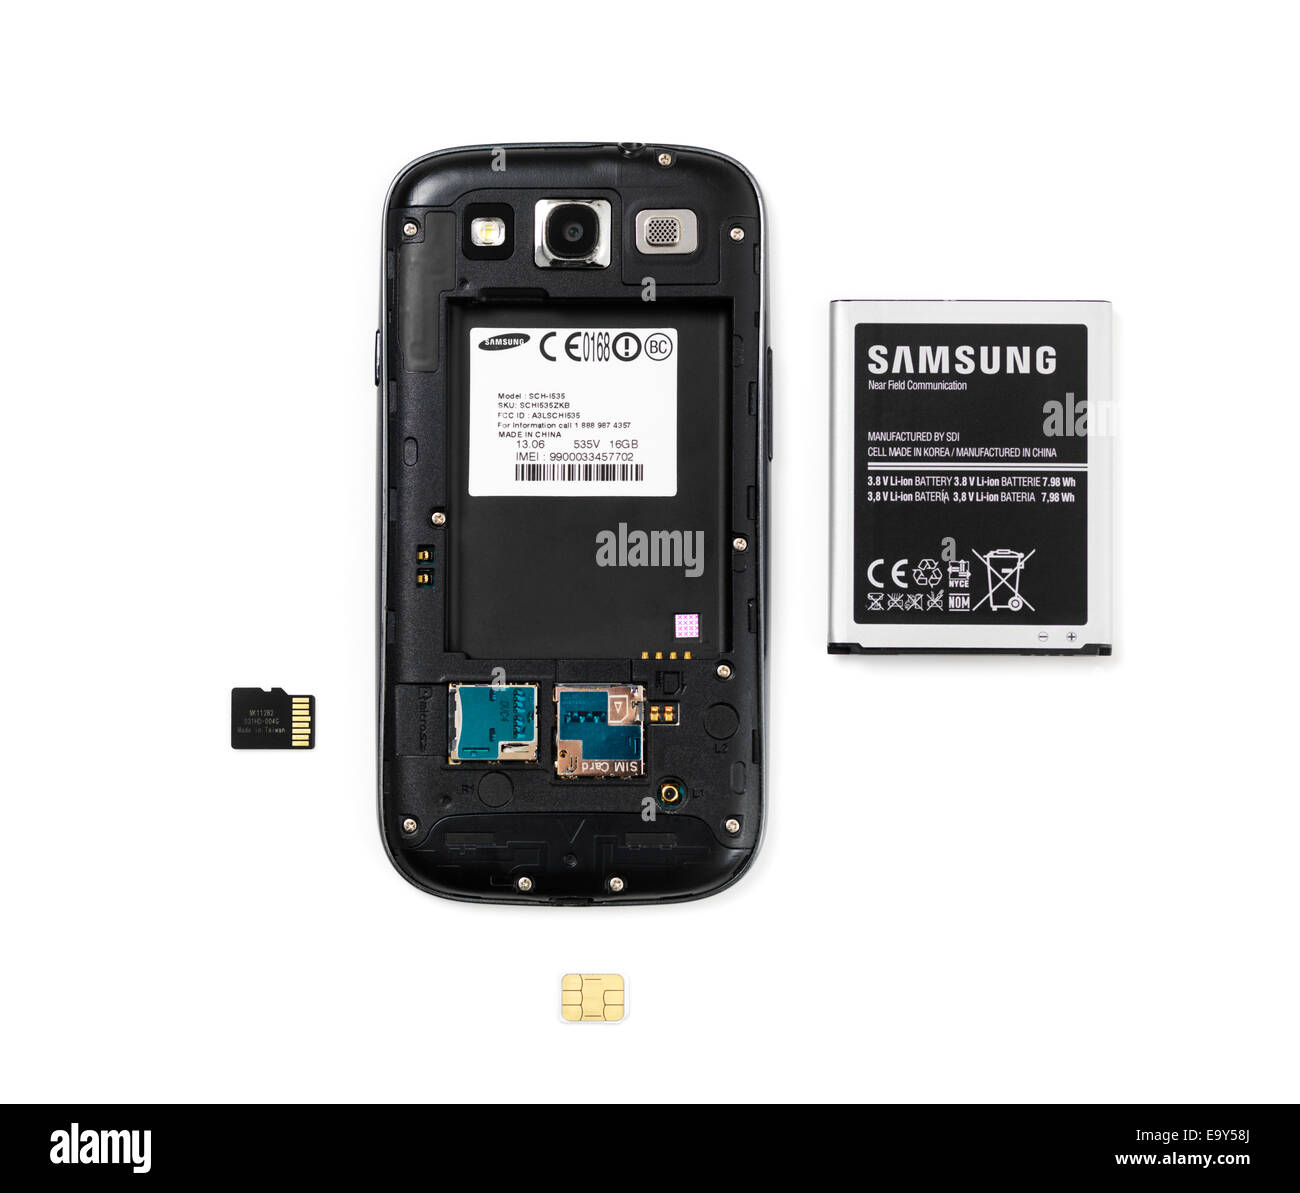 Camera Sim Card For Android Phones samsung android phone without the rear cover and removed battery memory sim card isolated on white background